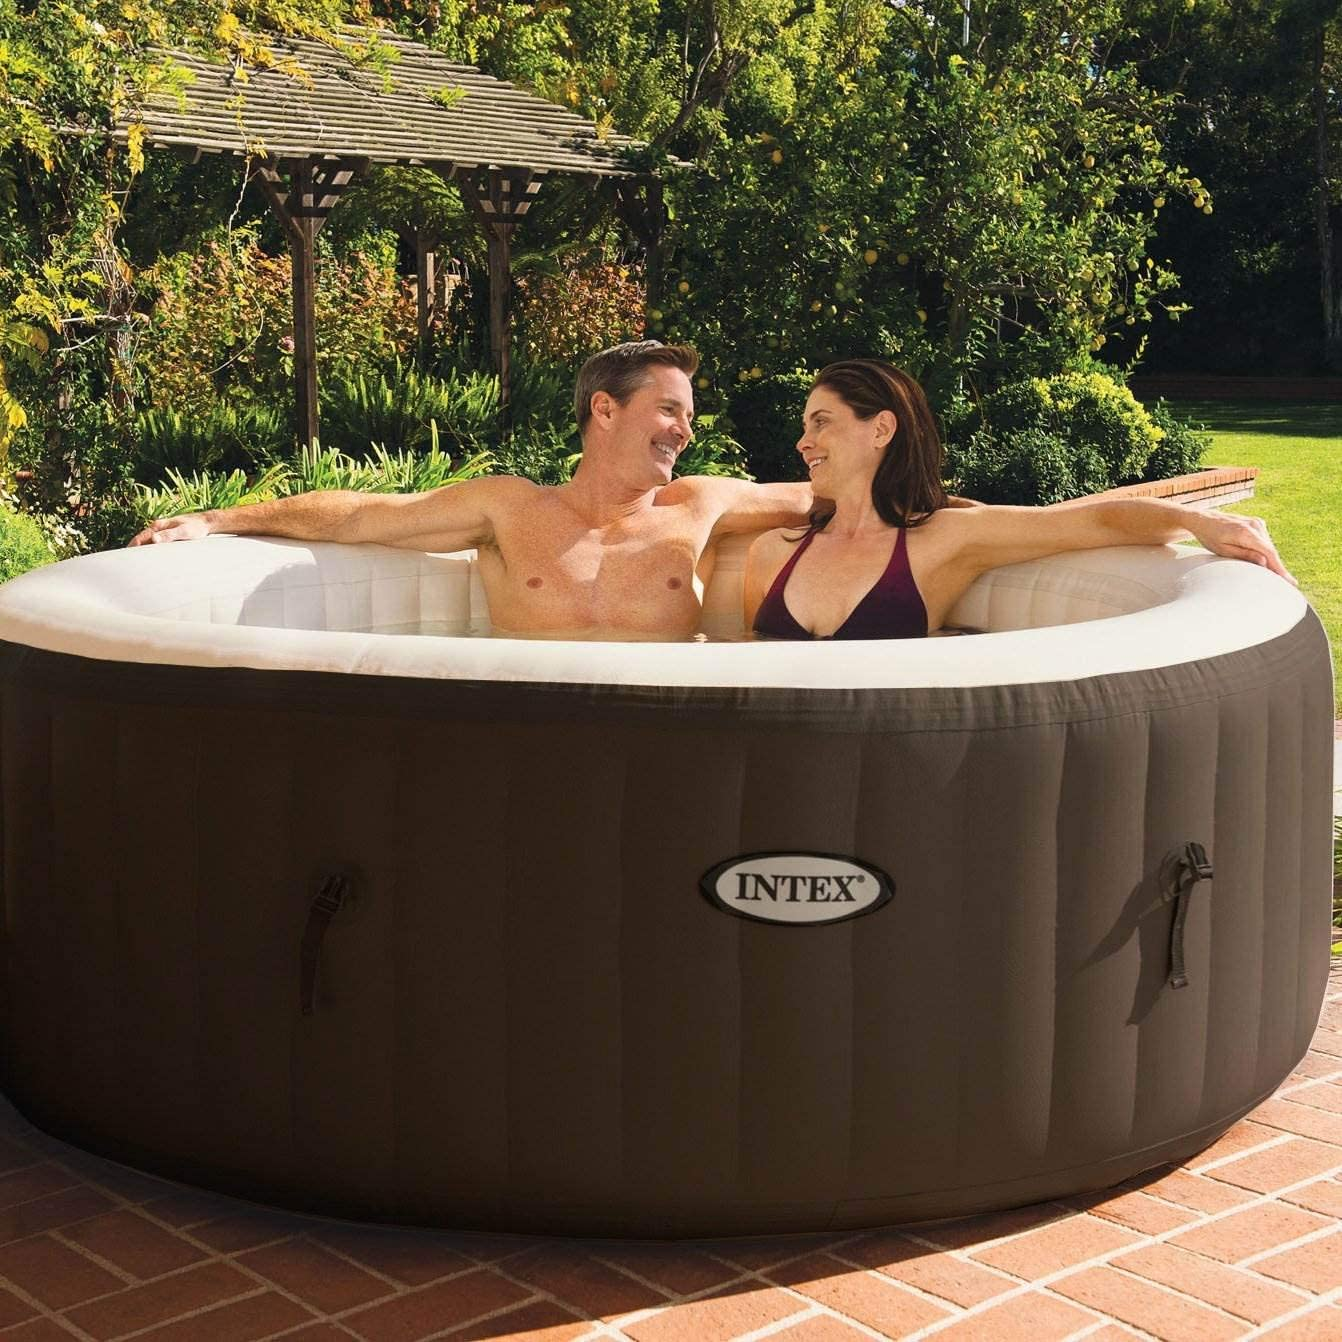 Intex Portable Heated Hot Tub